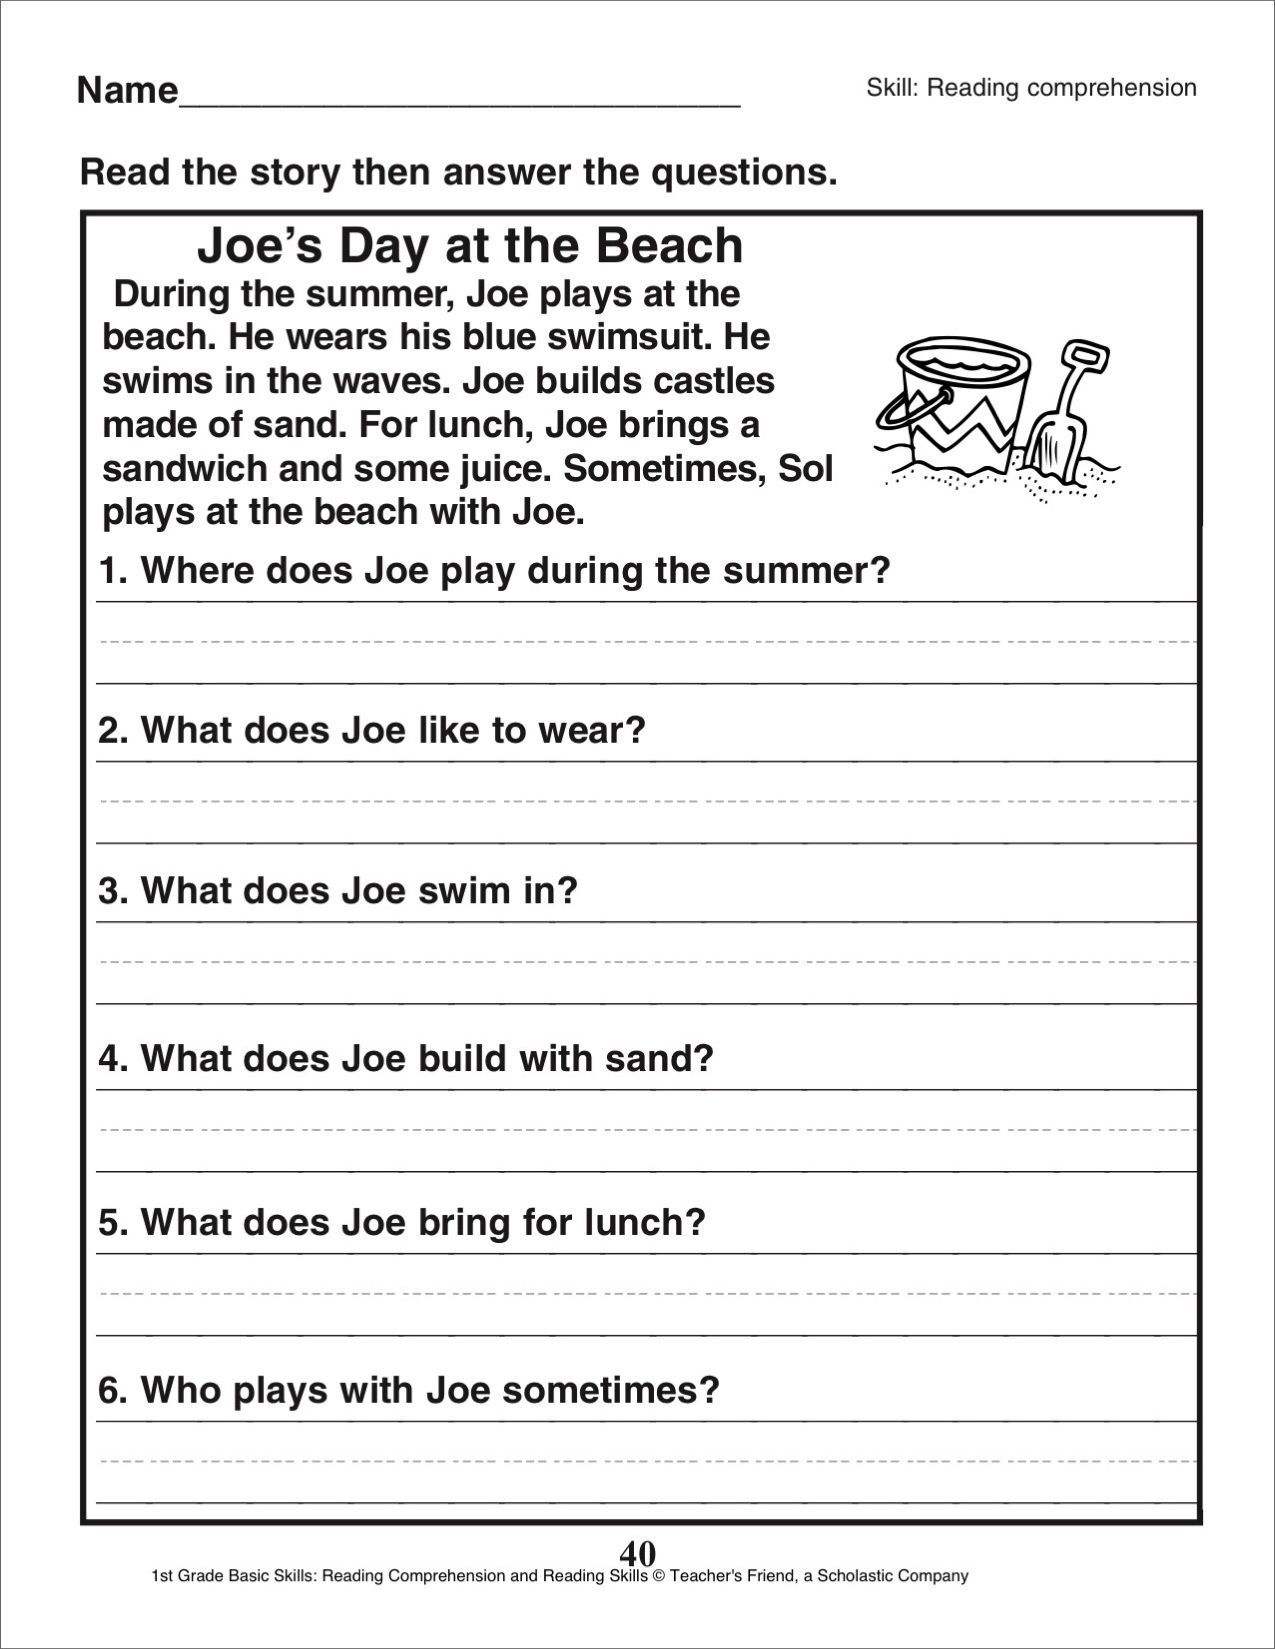 Image From Http Printables Scholastic Com Content Stores Printables Priv 3 Reading Comprehension Reading Comprehension Worksheets Reading Comprehension Texts Di 2021 [ 1649 x 1275 Pixel ]